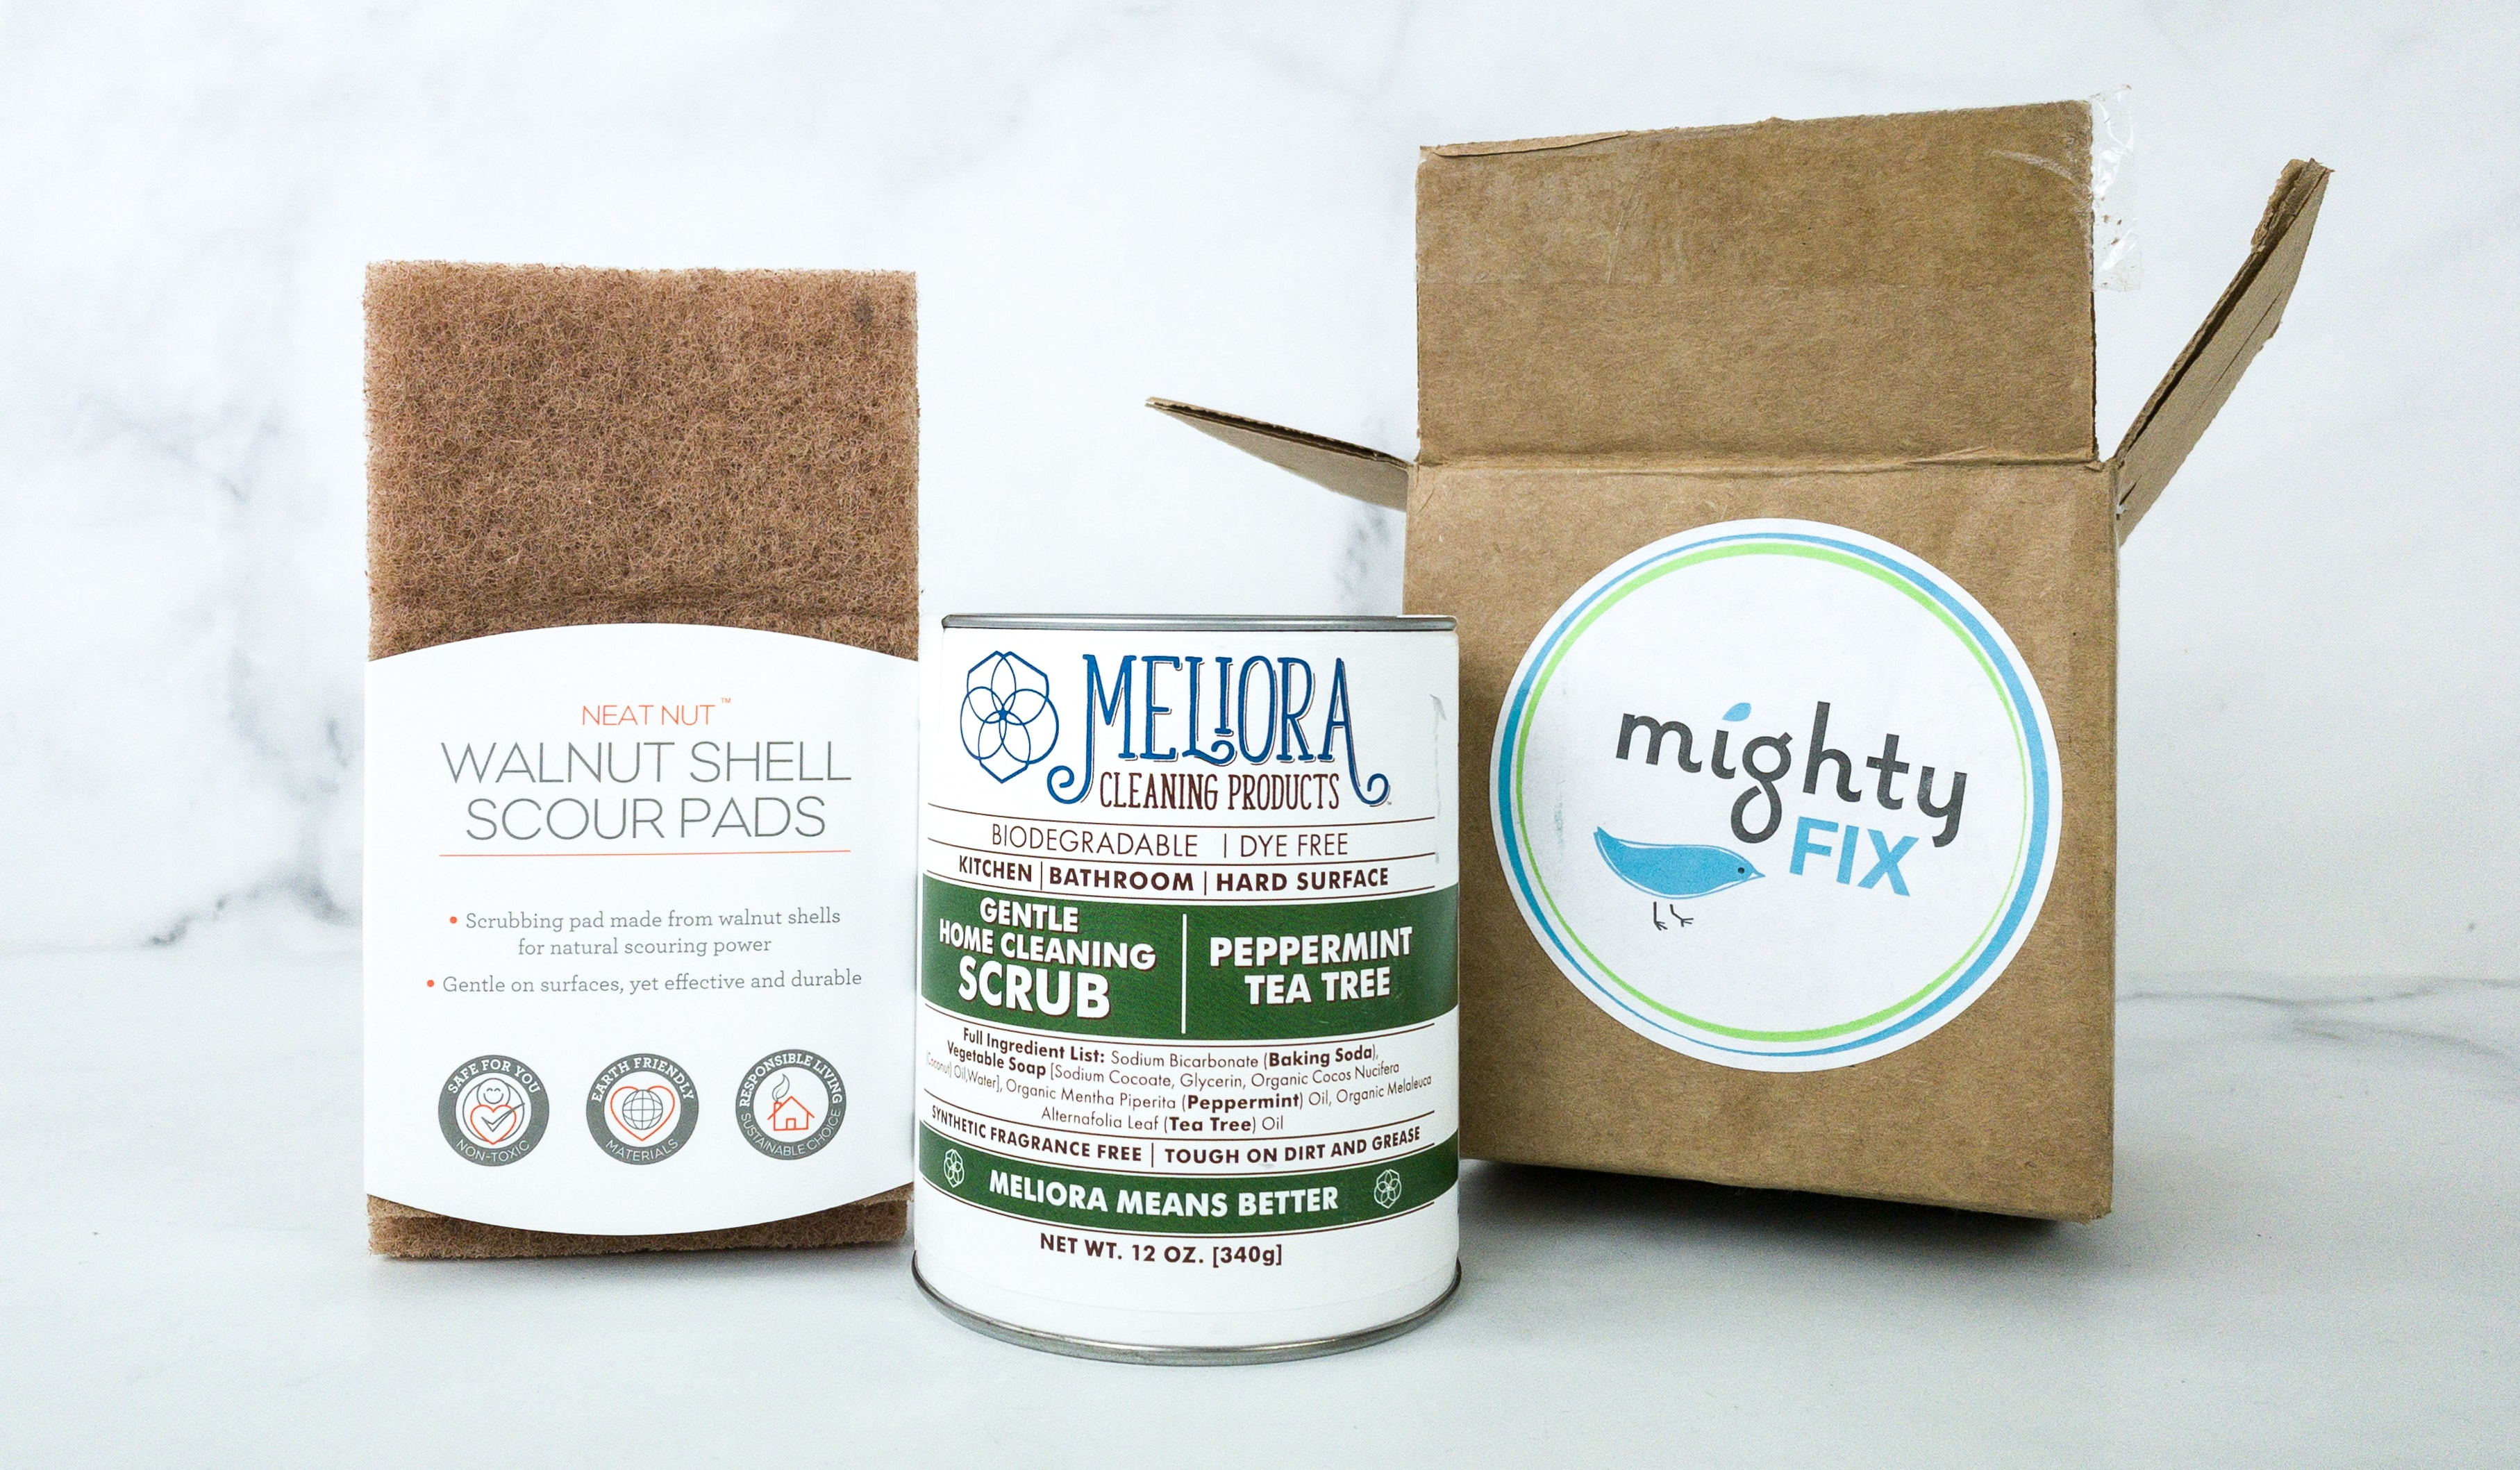 Mighty Fix October 2019 Review + First Month $3 Coupon!